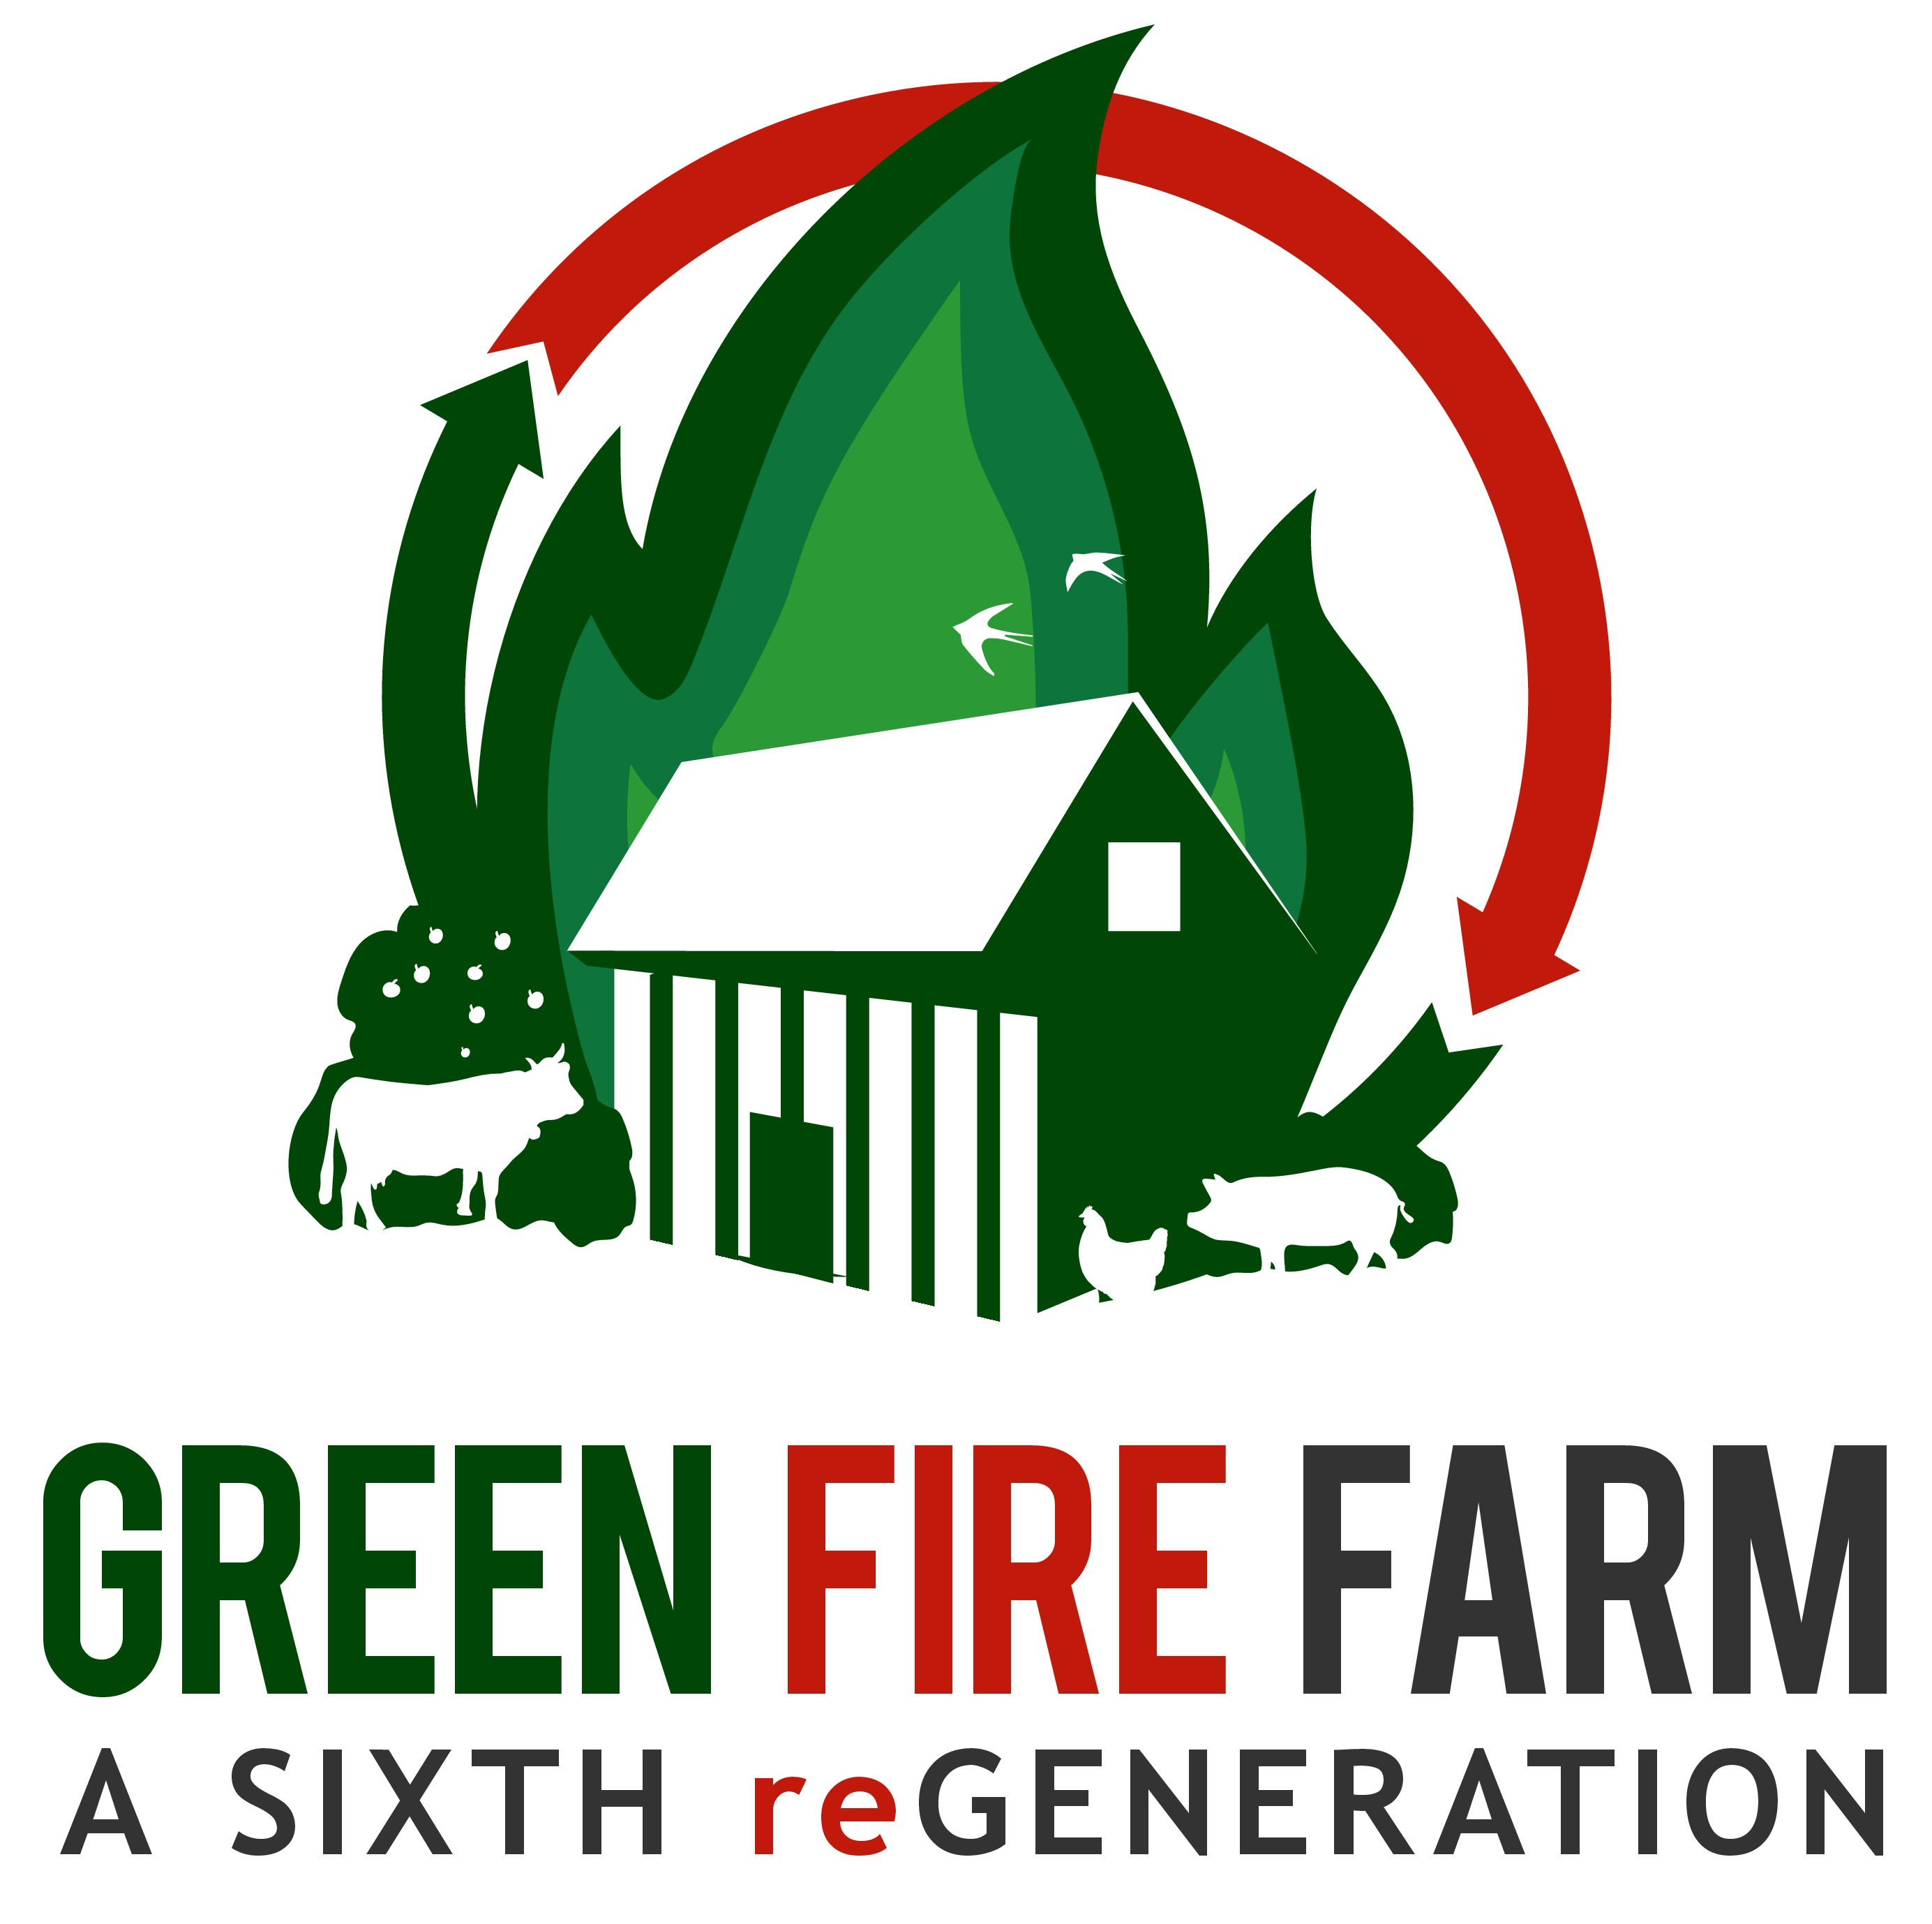 Green Fire Farm has burning vision, we need a logo to match it and ignite a spark in our customers!